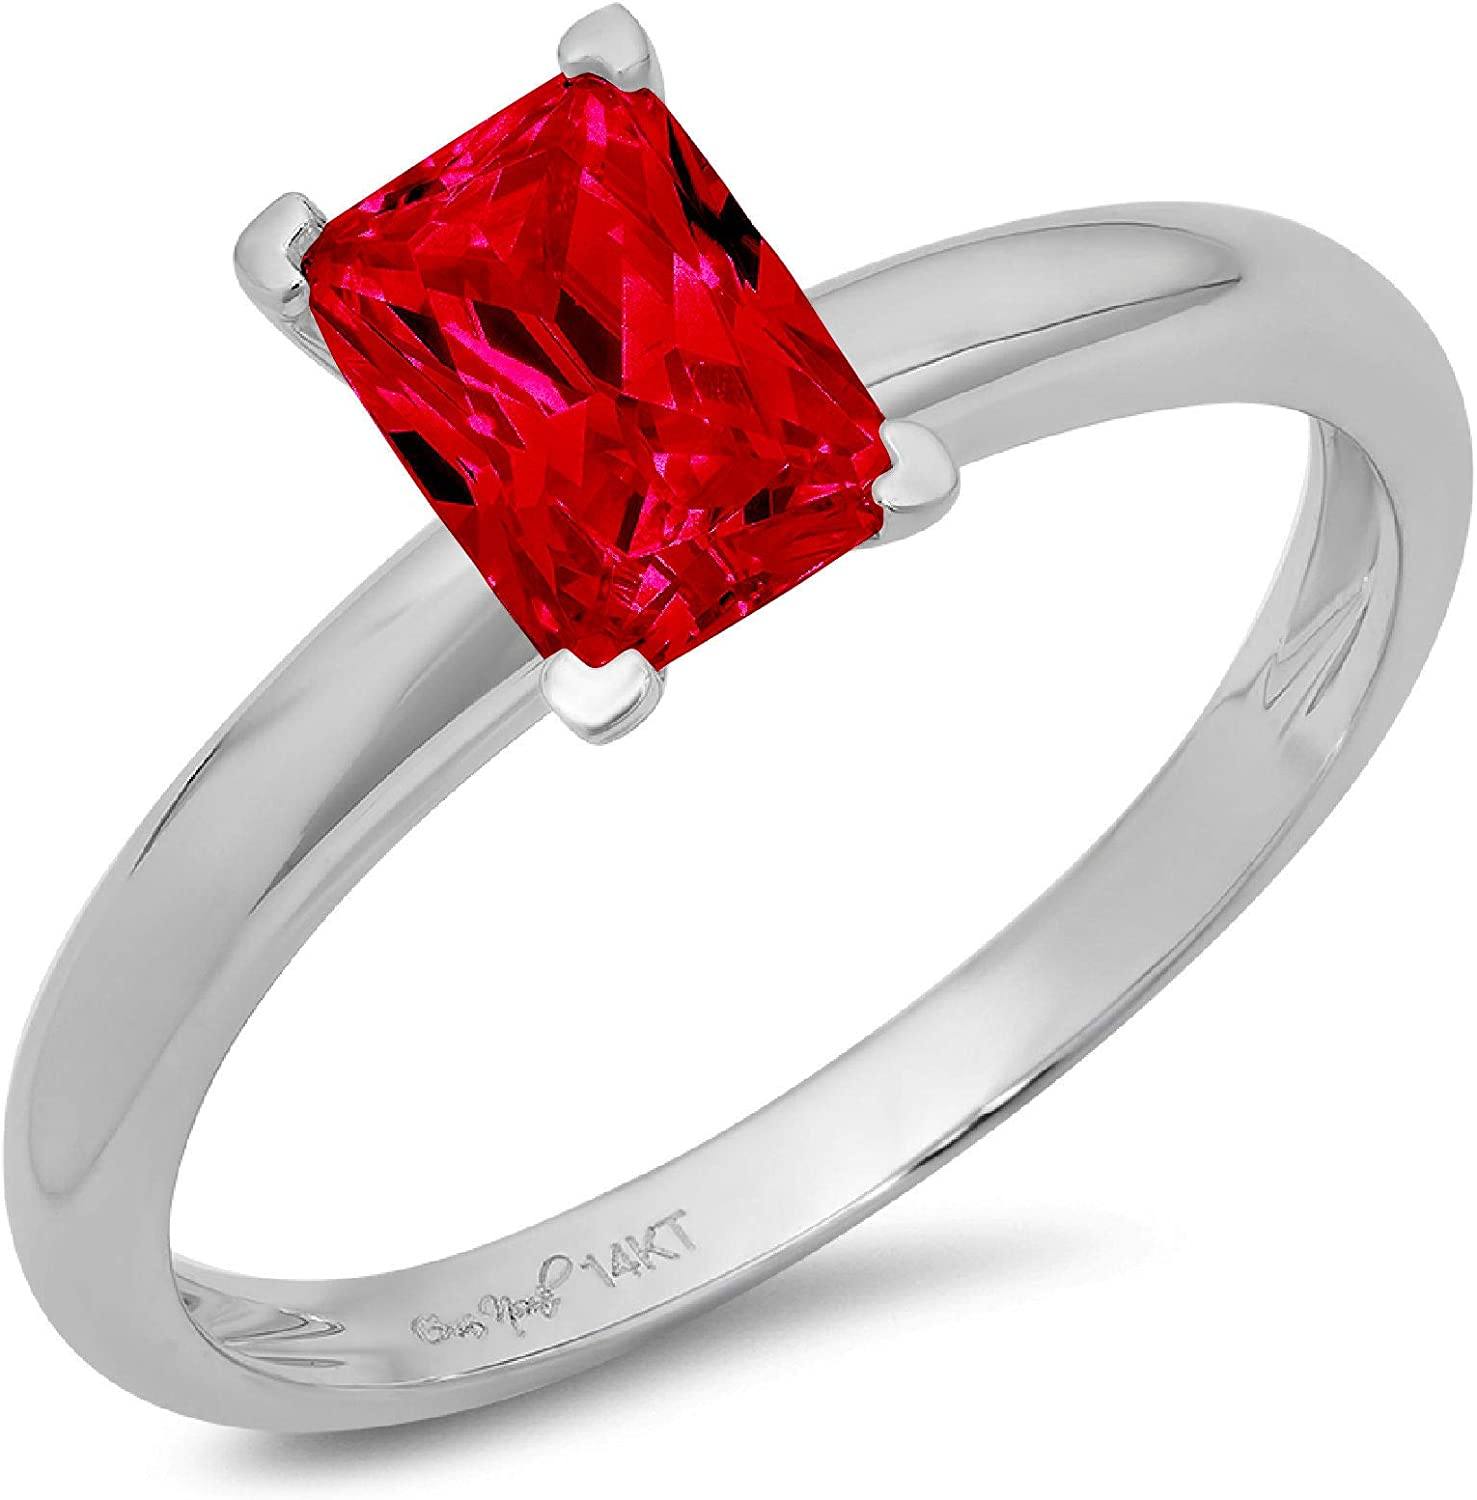 1.0 ct Brilliant Emerald Cut Solitaire Flawless Stunning Pink Tourmaline Ideal VVS1 4-Prong Engagement Wedding Bridal Promise Anniversary Designer Ring Solid 14k White Gold for Women